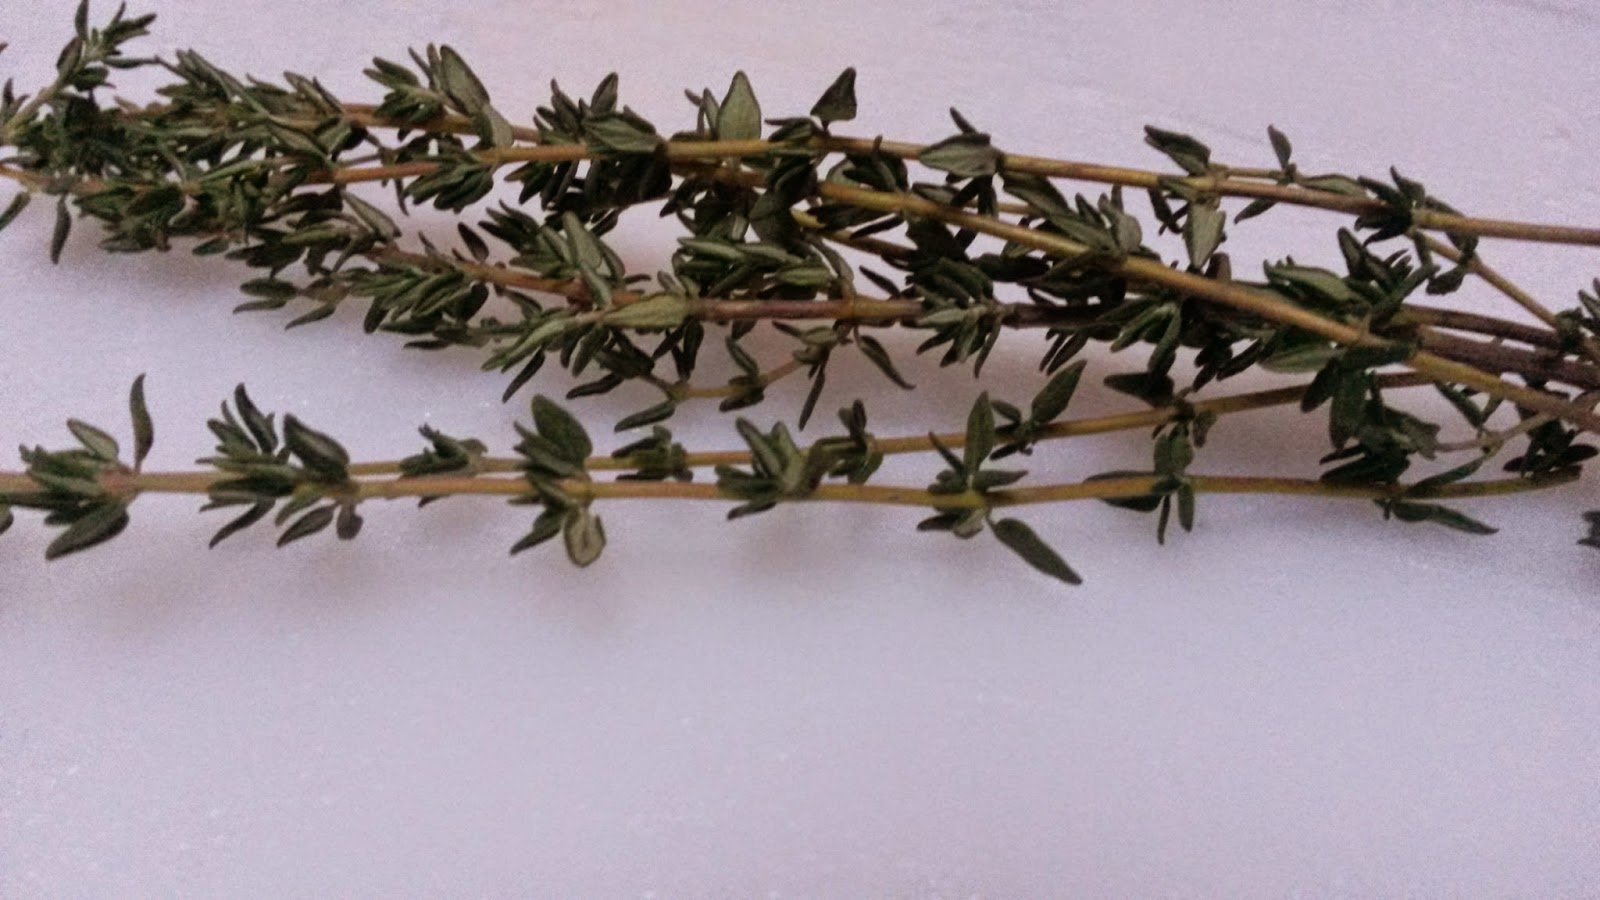 The Delightful Thyme